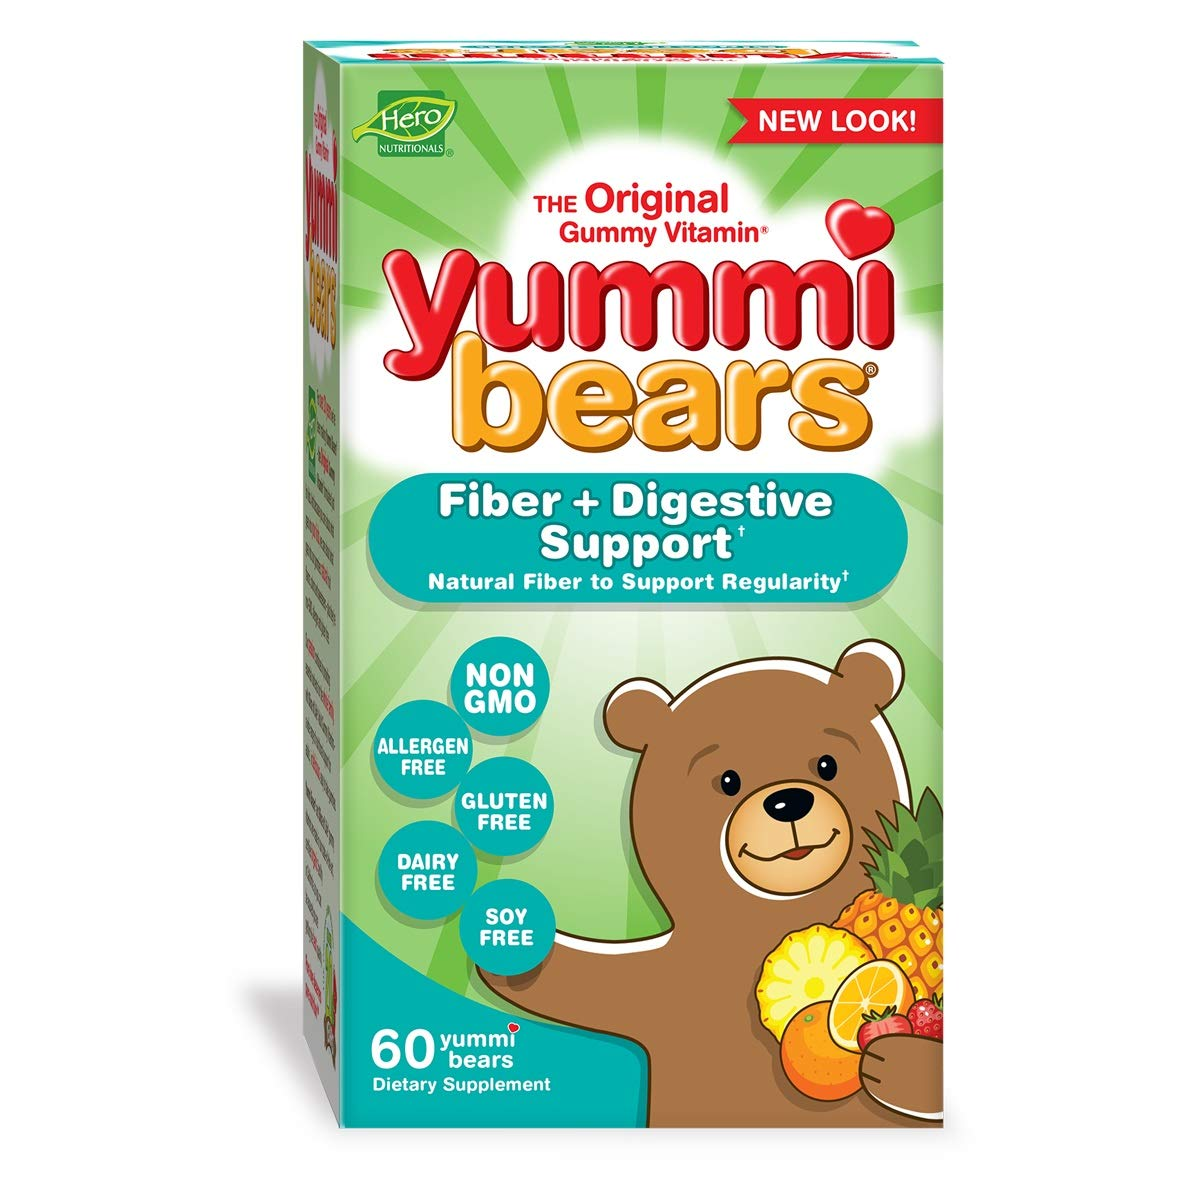 Yummi Bears Fiber Supplement Gummy Vitamin for Kids, 60 Gummy Bears